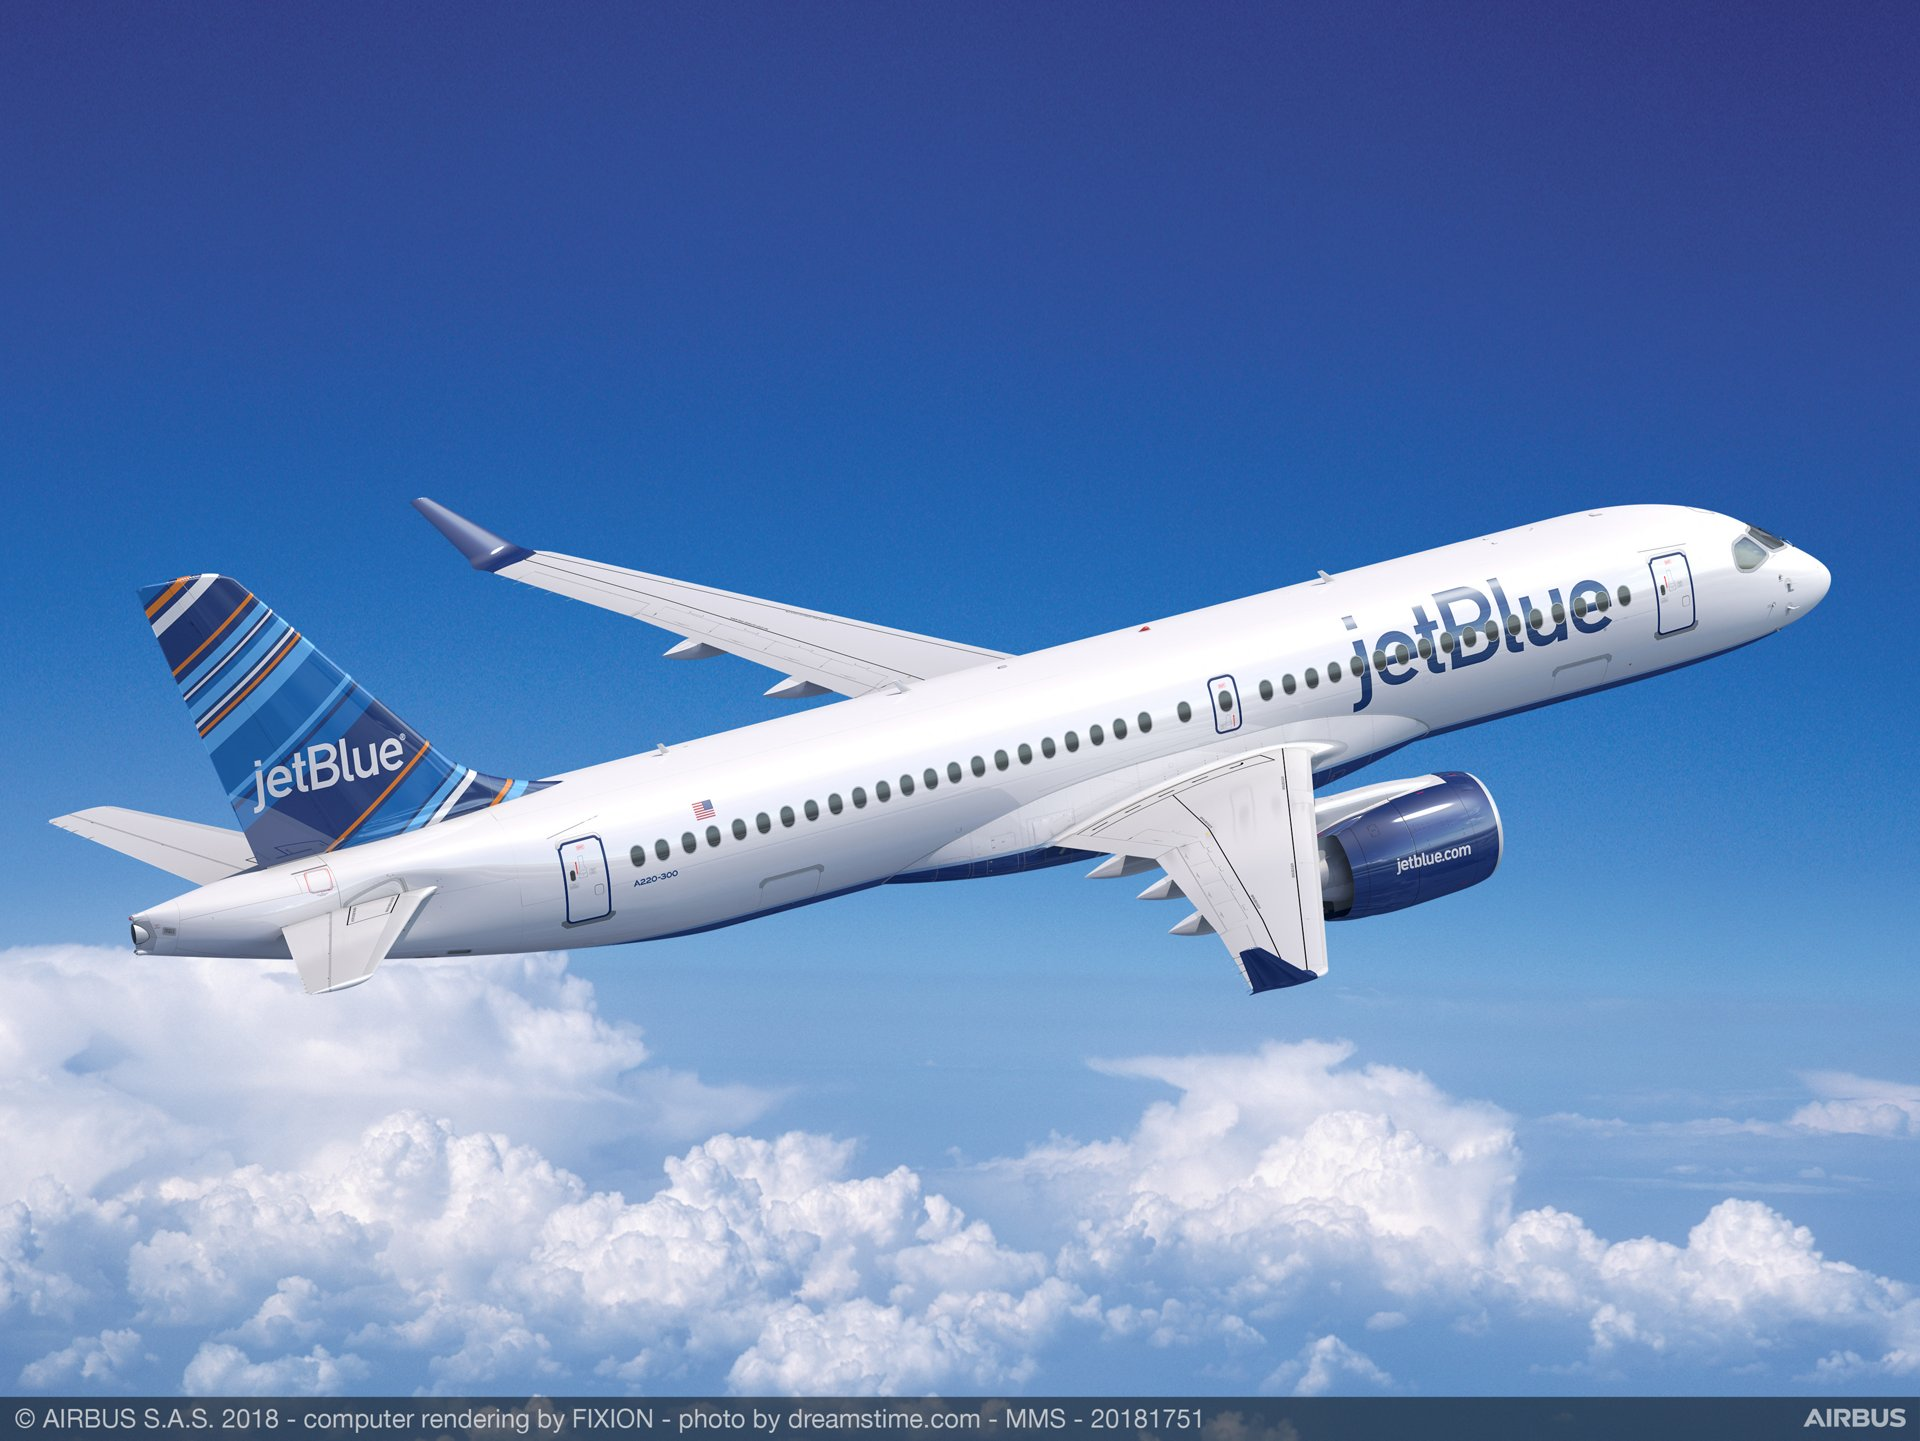 JetBlue Airways has ordered 60 A220-300 aircraft, the larger model of the new, industry-leading A220 series